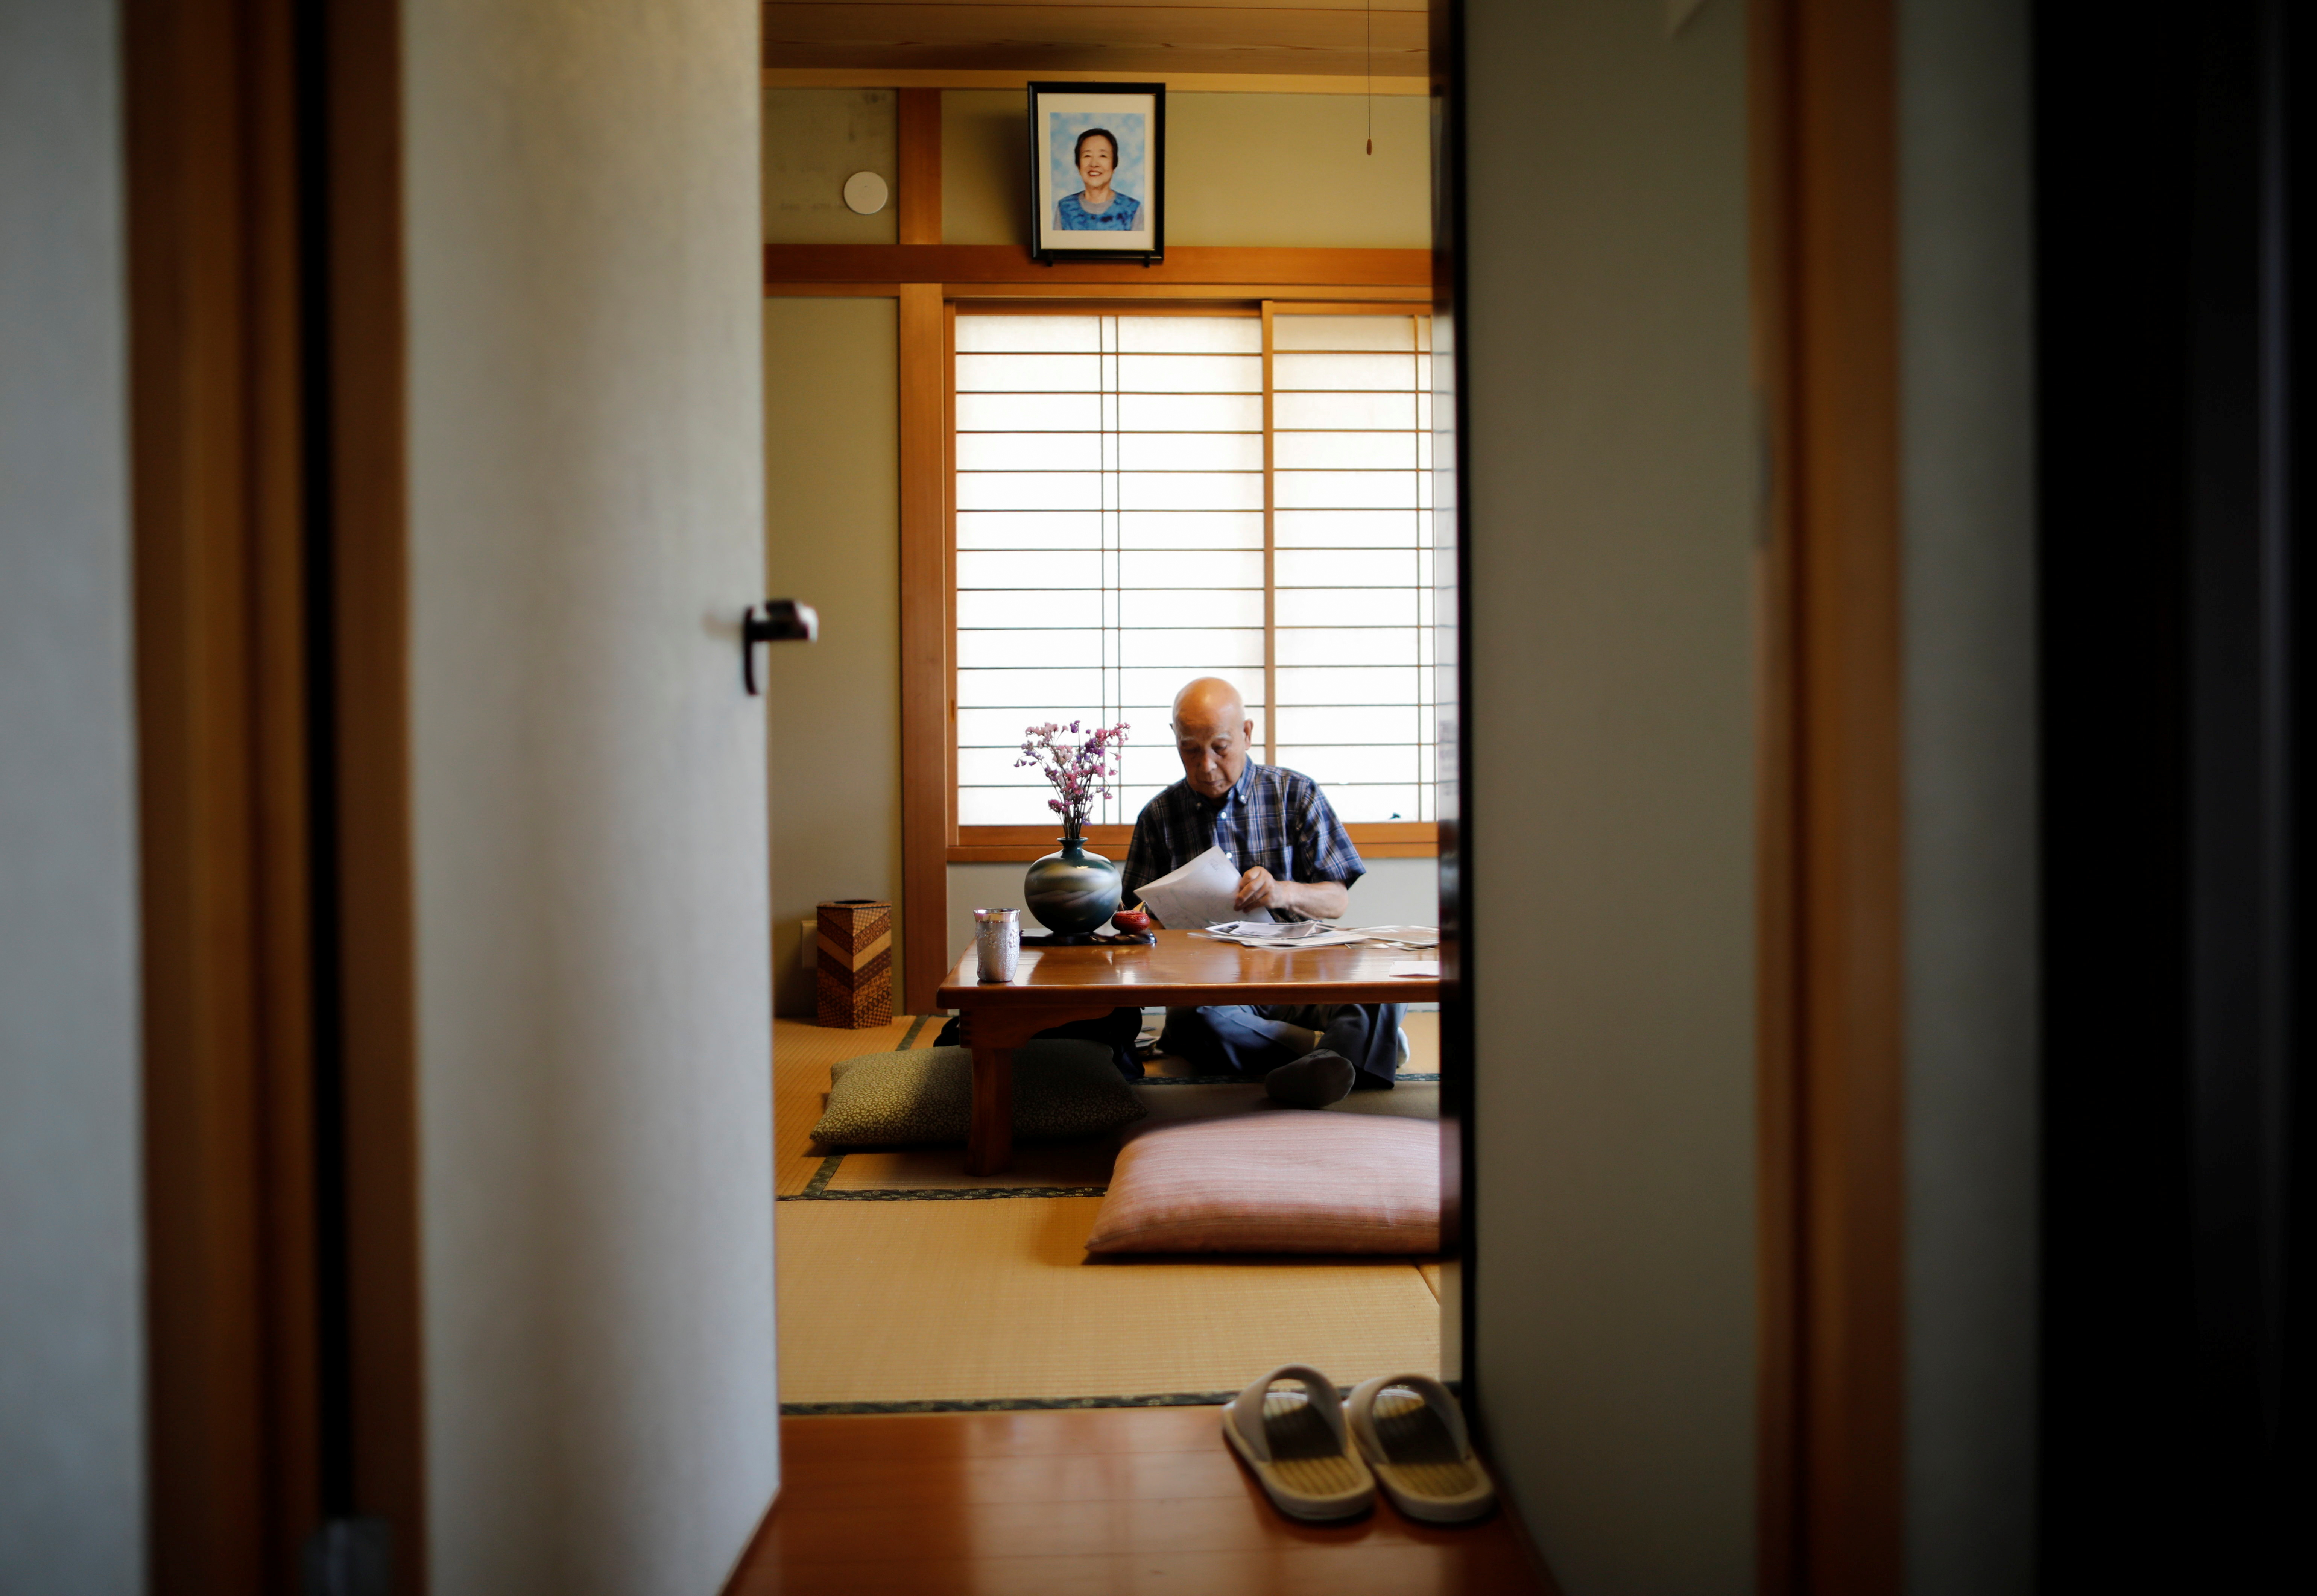 Kohei Jinno, 87, who was forced to leave his house two times ahead of the 1964 and 2020 Olympics Games to make way for construction of the main stadium, pauses under the portrait photo of his late wife Yasuko at his house, in Tokyo, Japan June 24, 2021.  REUTERS/Issei Kato